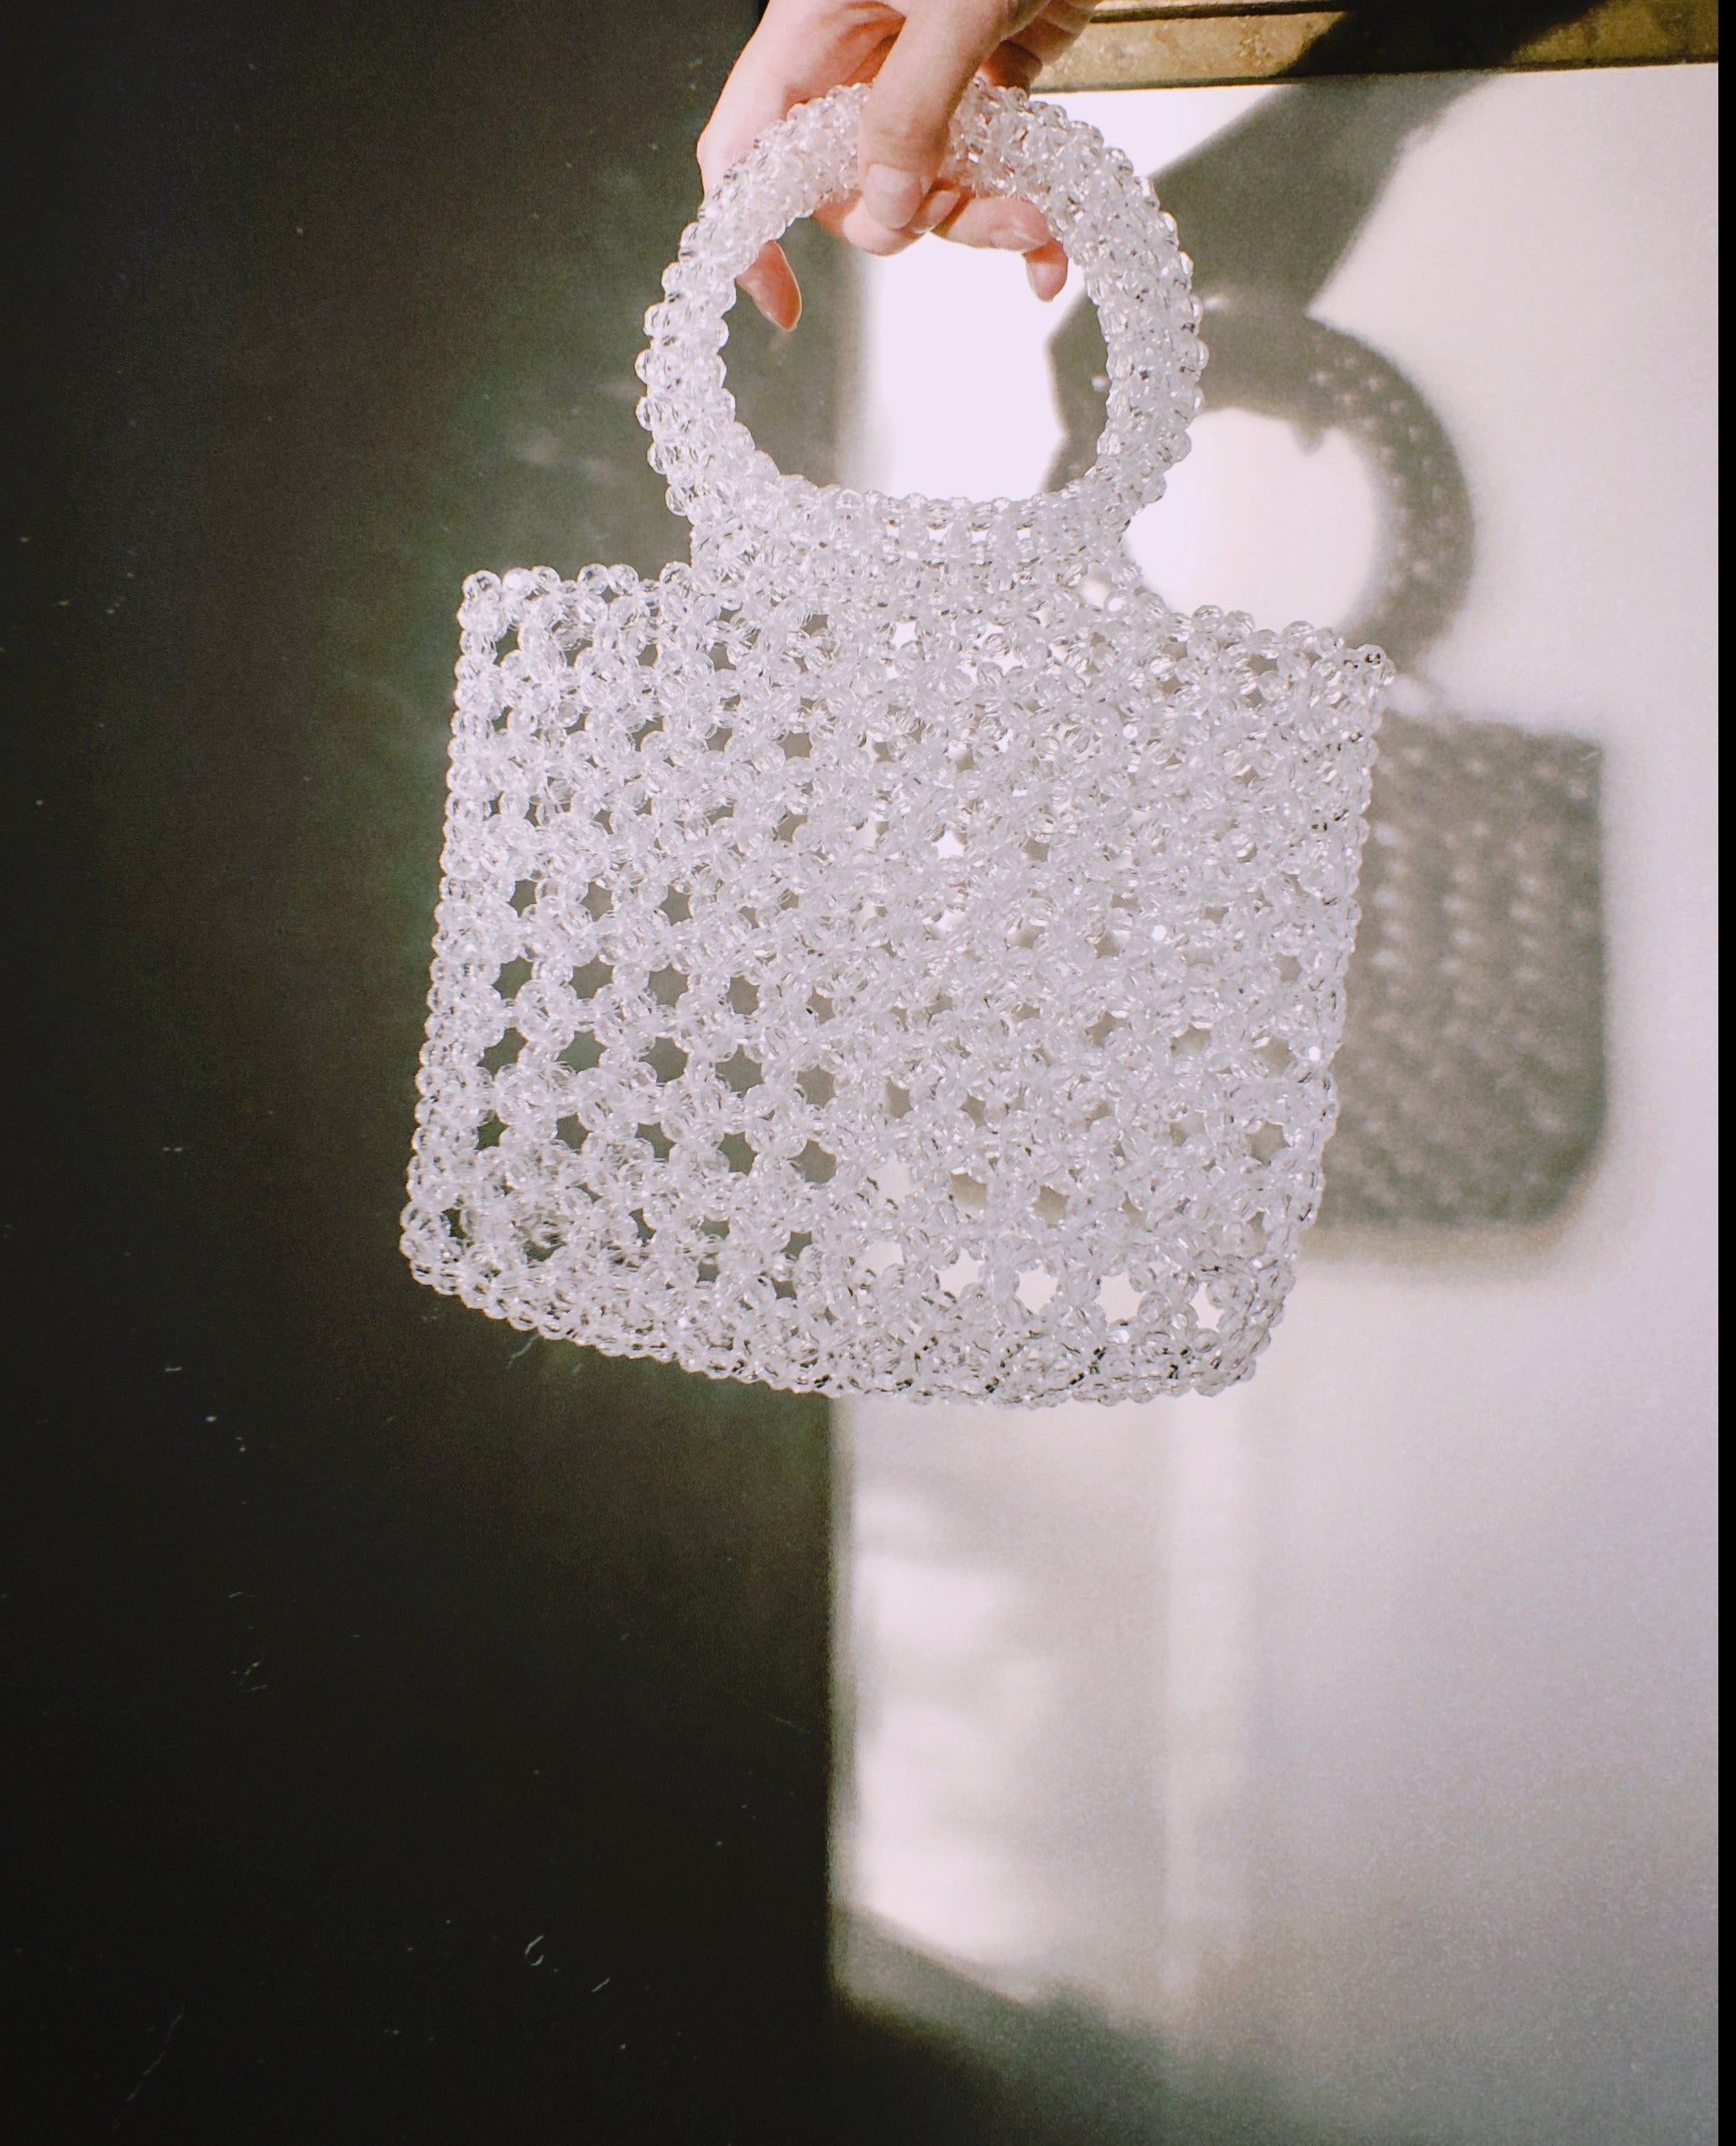 The Stevie Beaded Shopper Bag by Veronique